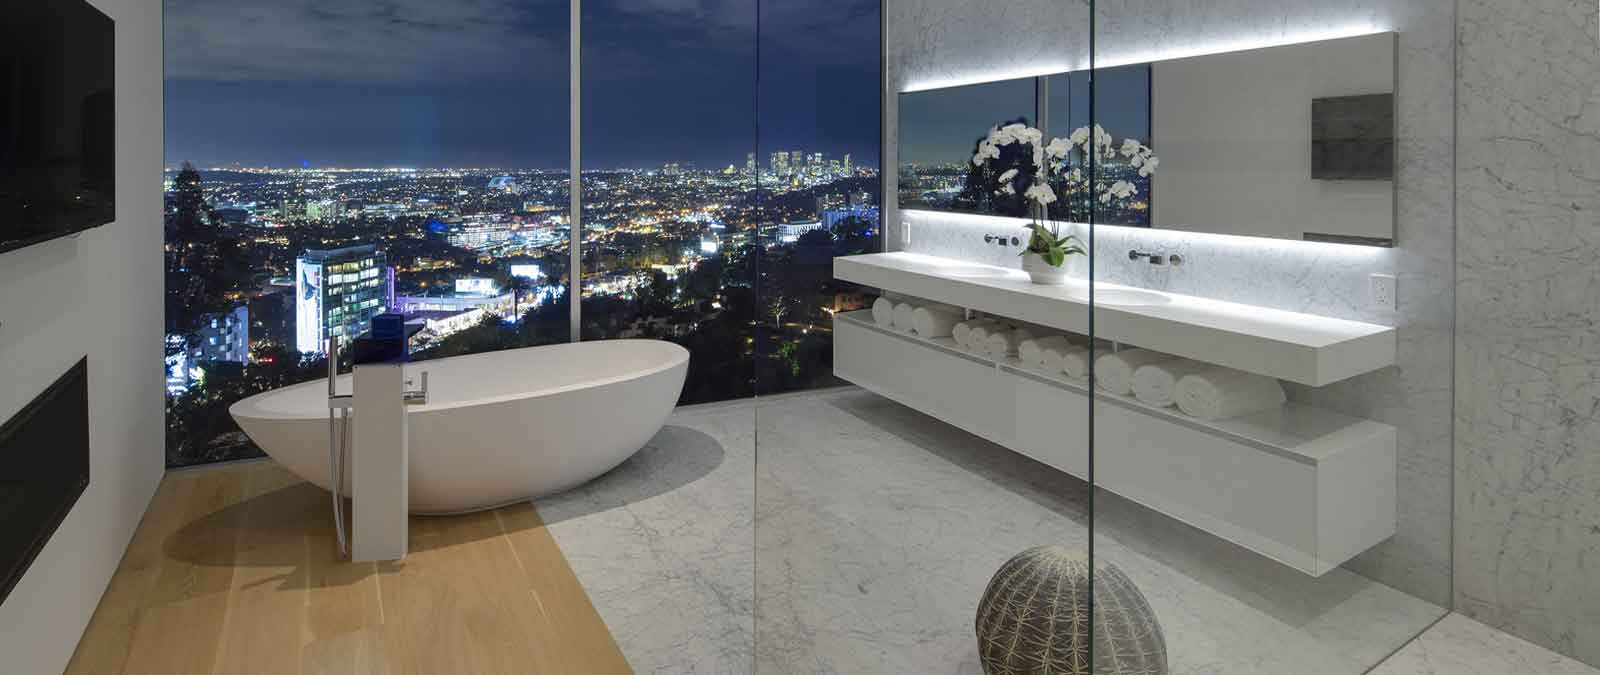 7 Dream Bathrooms With Spa Style Luxury